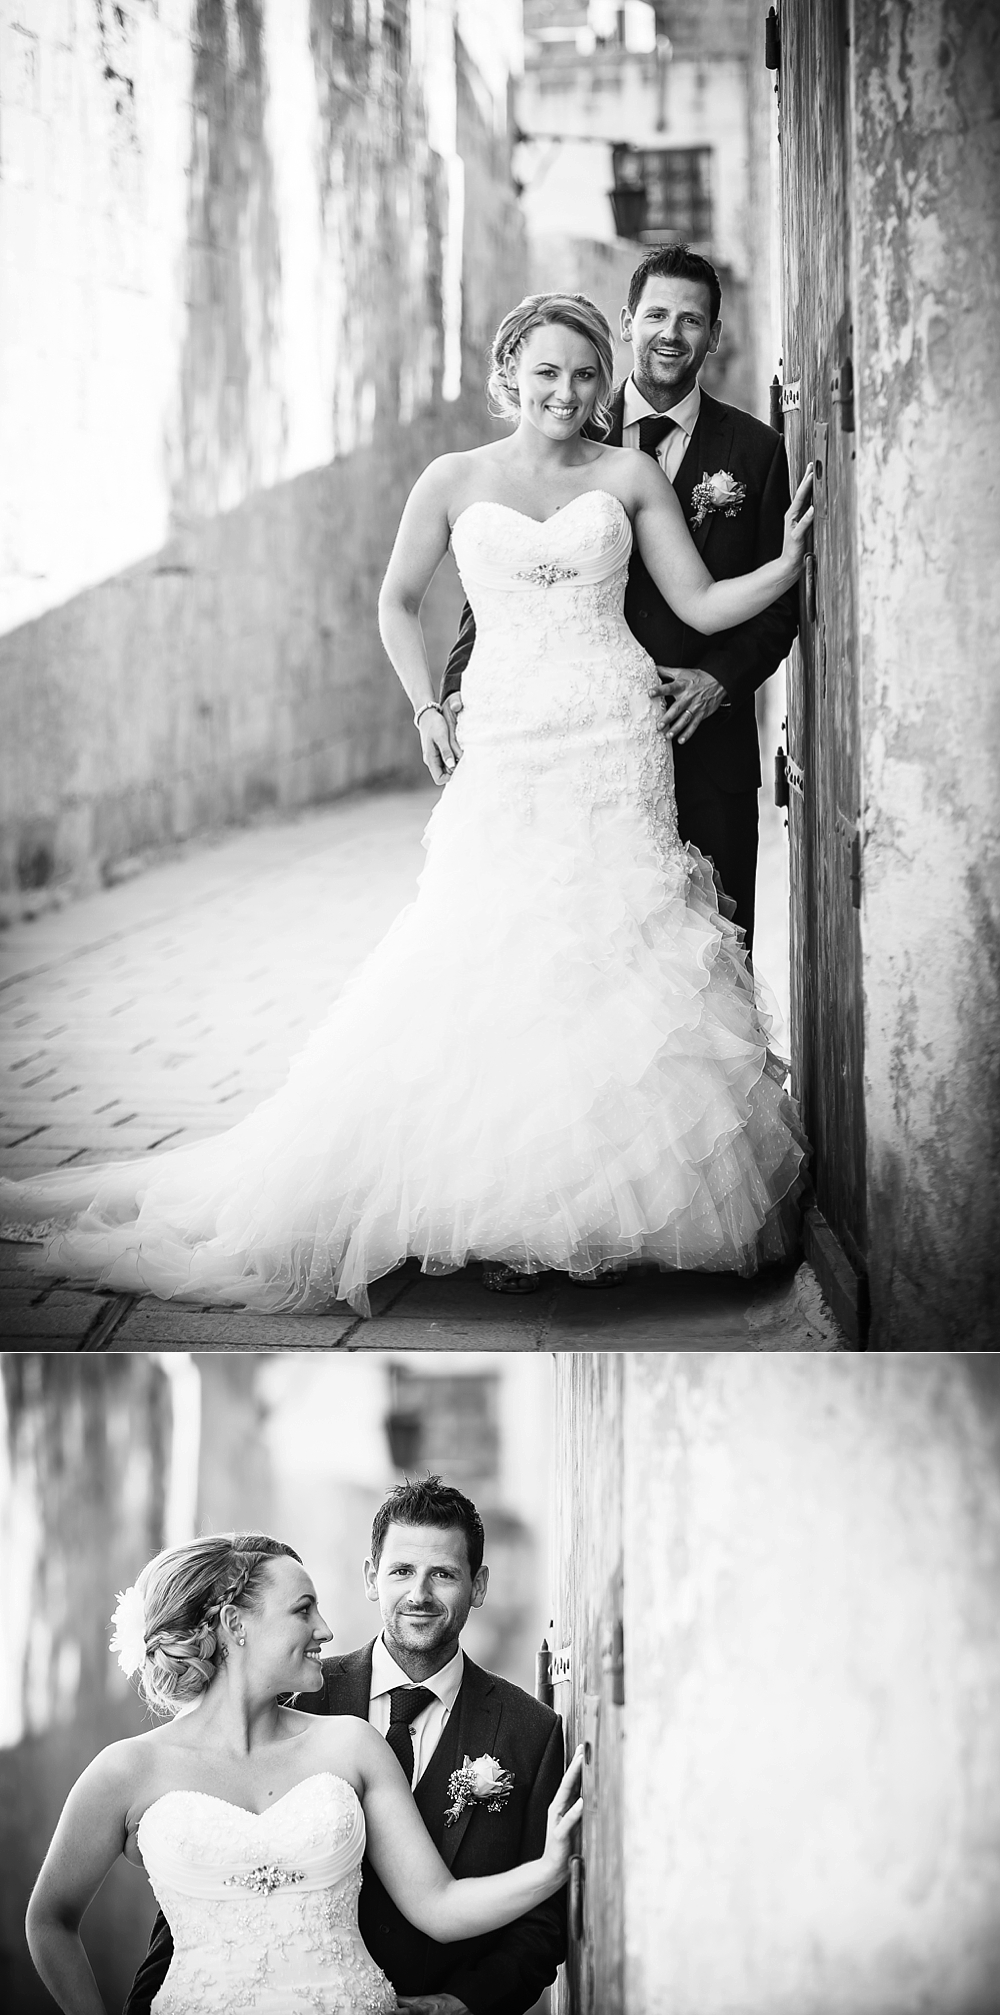 Corinthia St. George's Bay - Wedding Photography Malta - Shane P. Watts